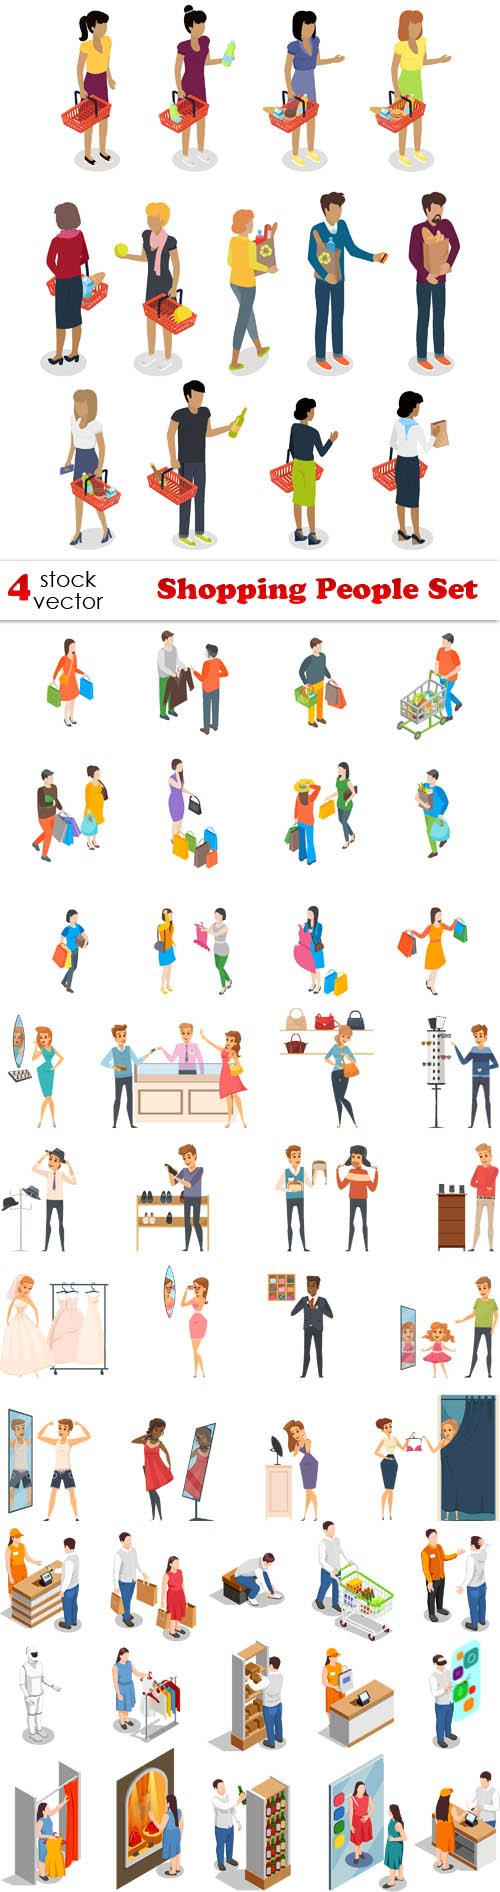 Vectors - Shopping People Set